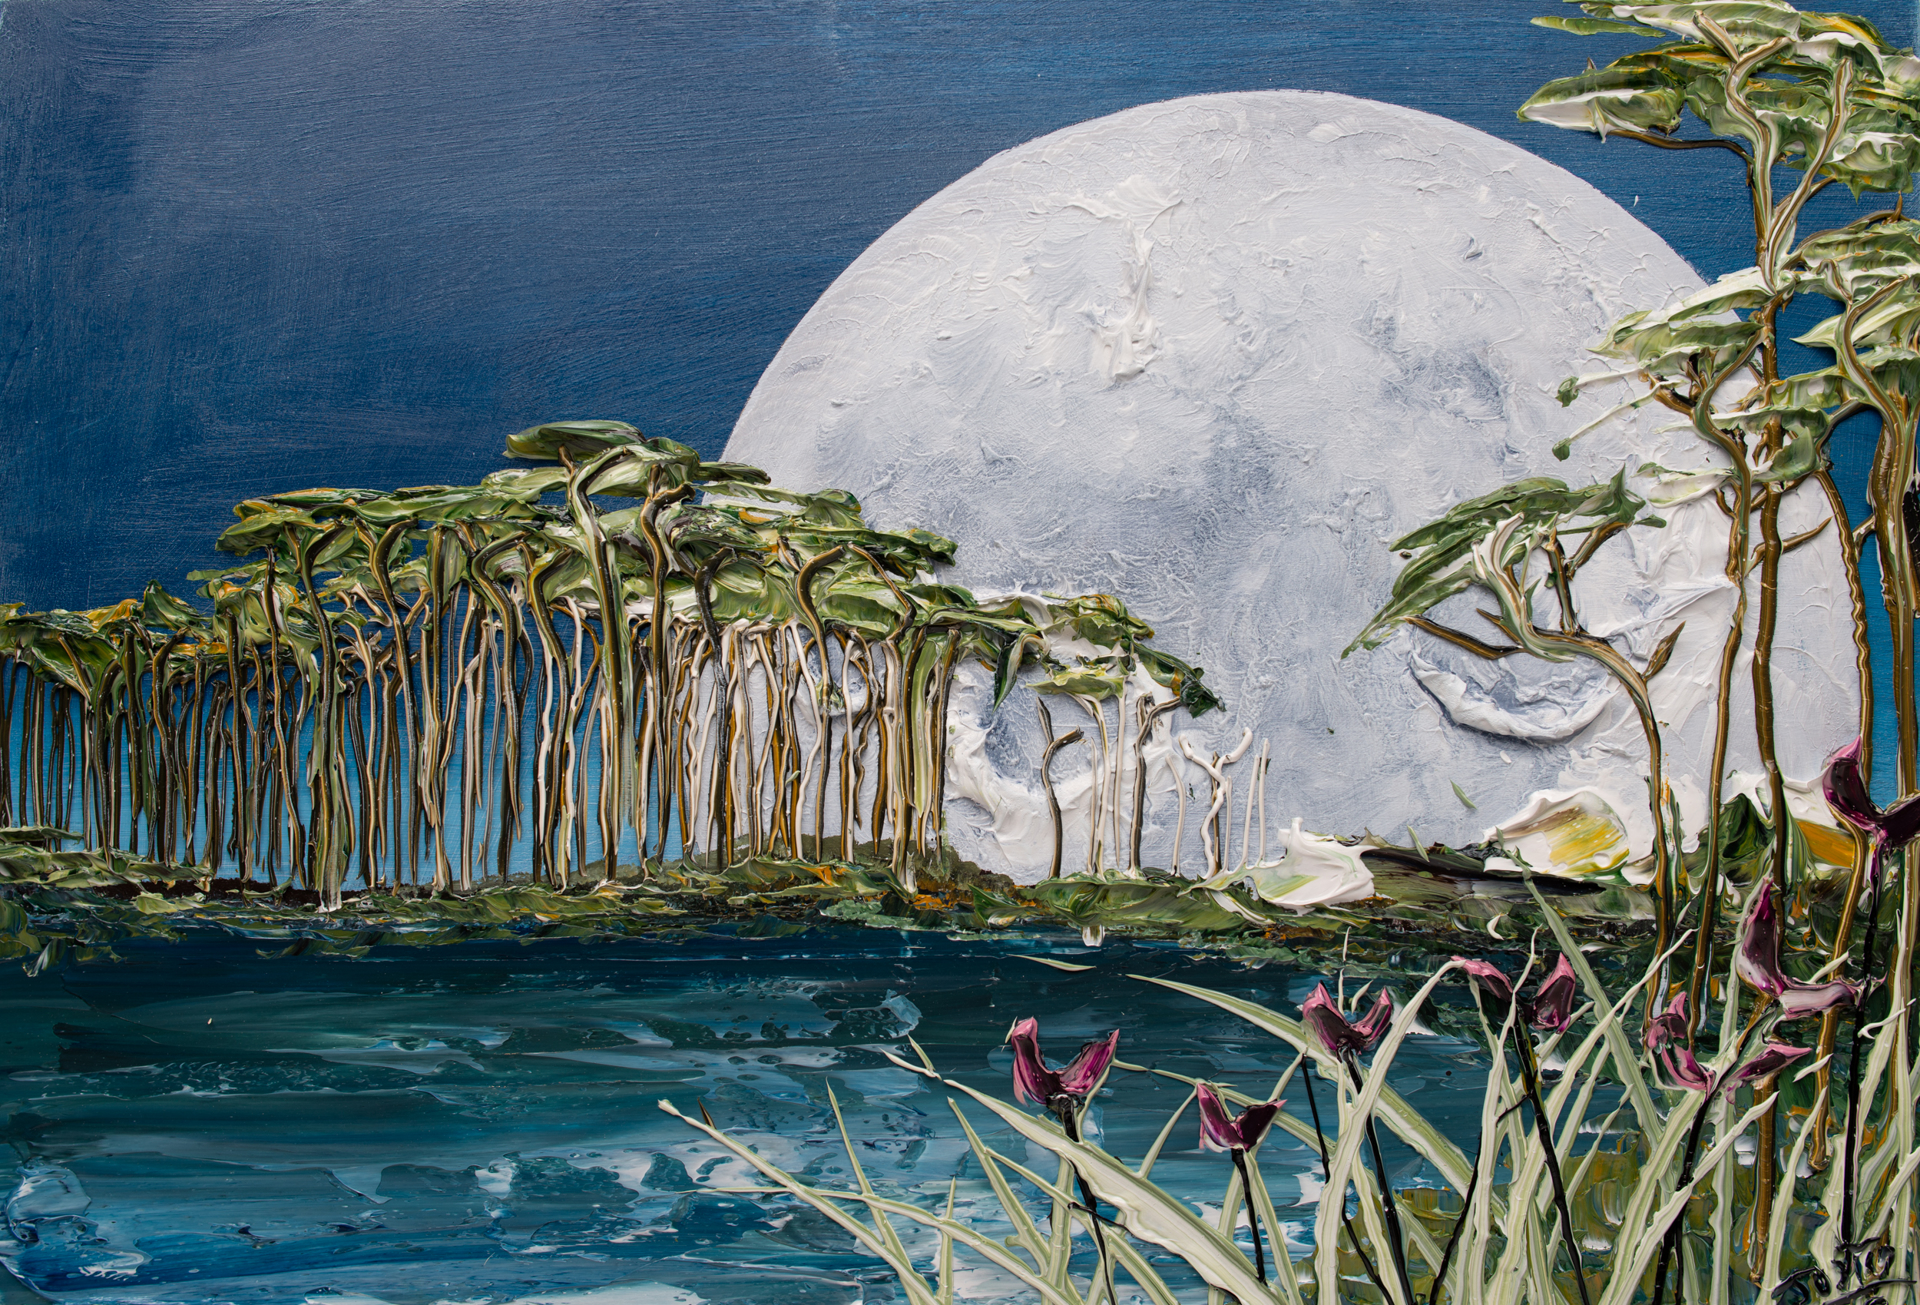 MOONSCAPE MS-35x24-2019-258 by JUSTIN GAFFREY